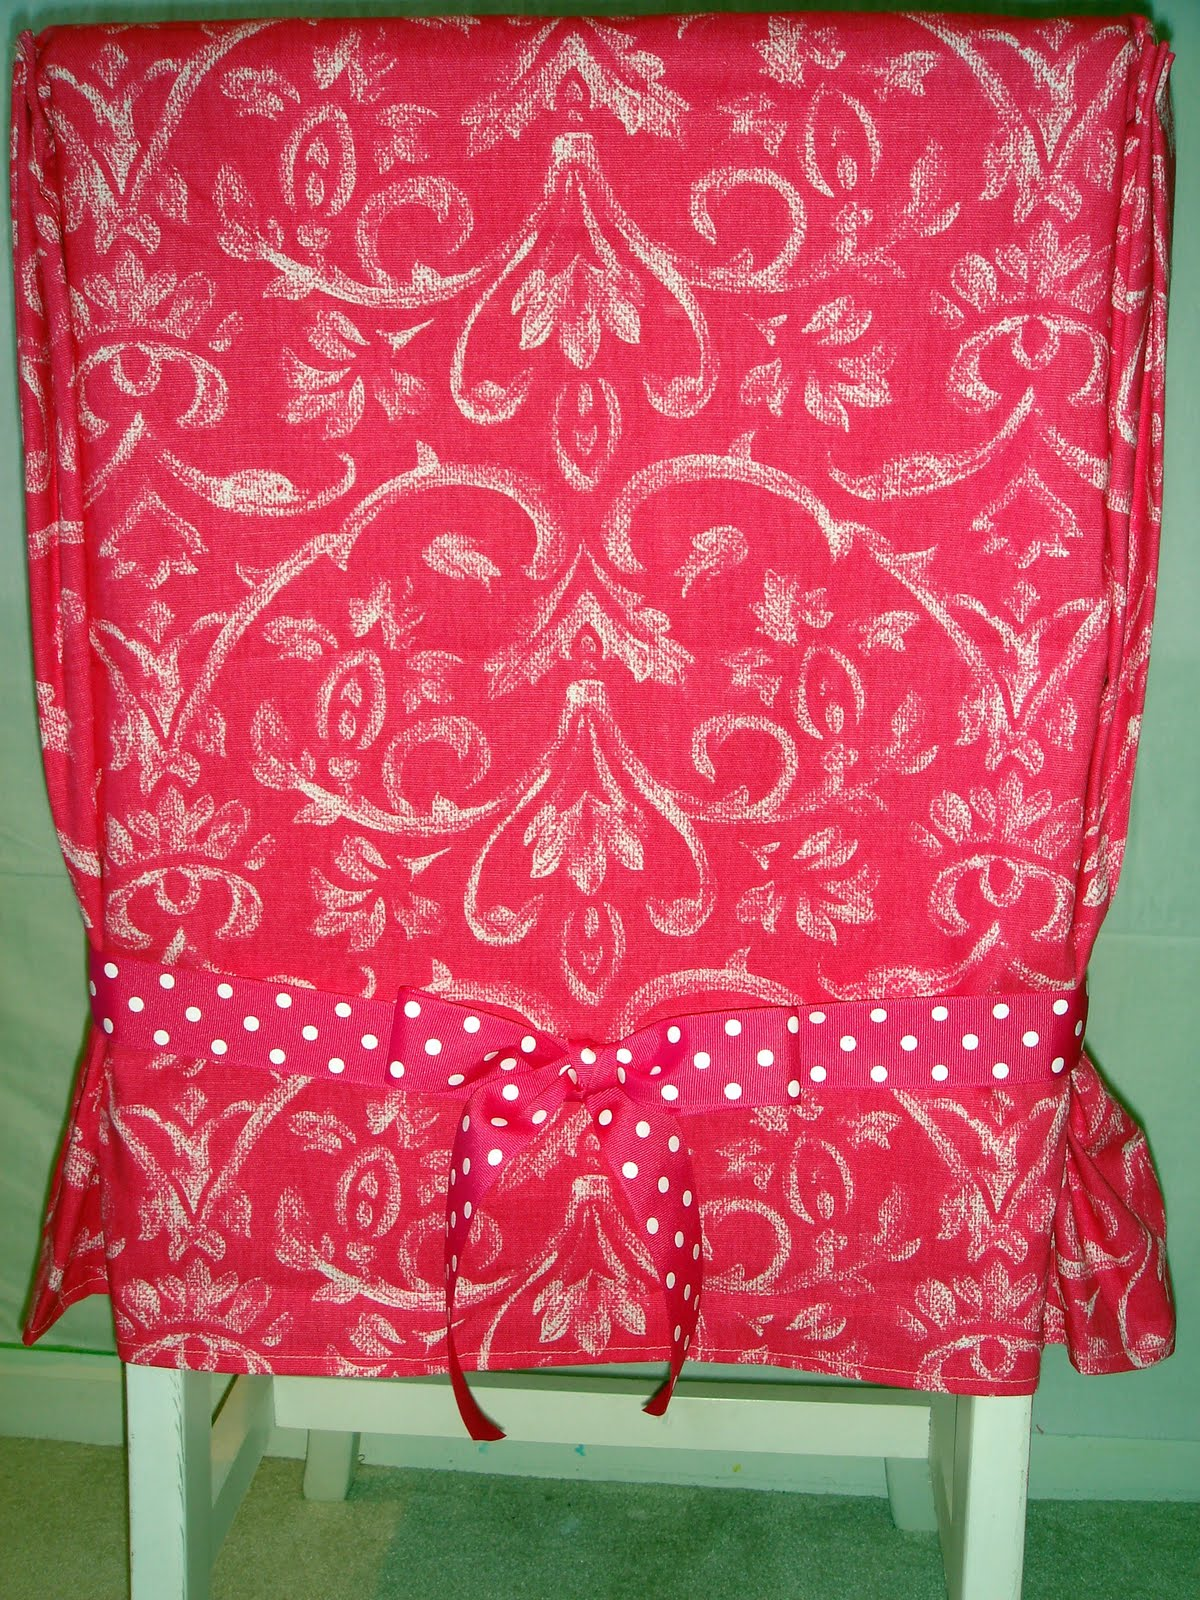 Chair Slipcovers For Dorm Desk Chairs Part 94